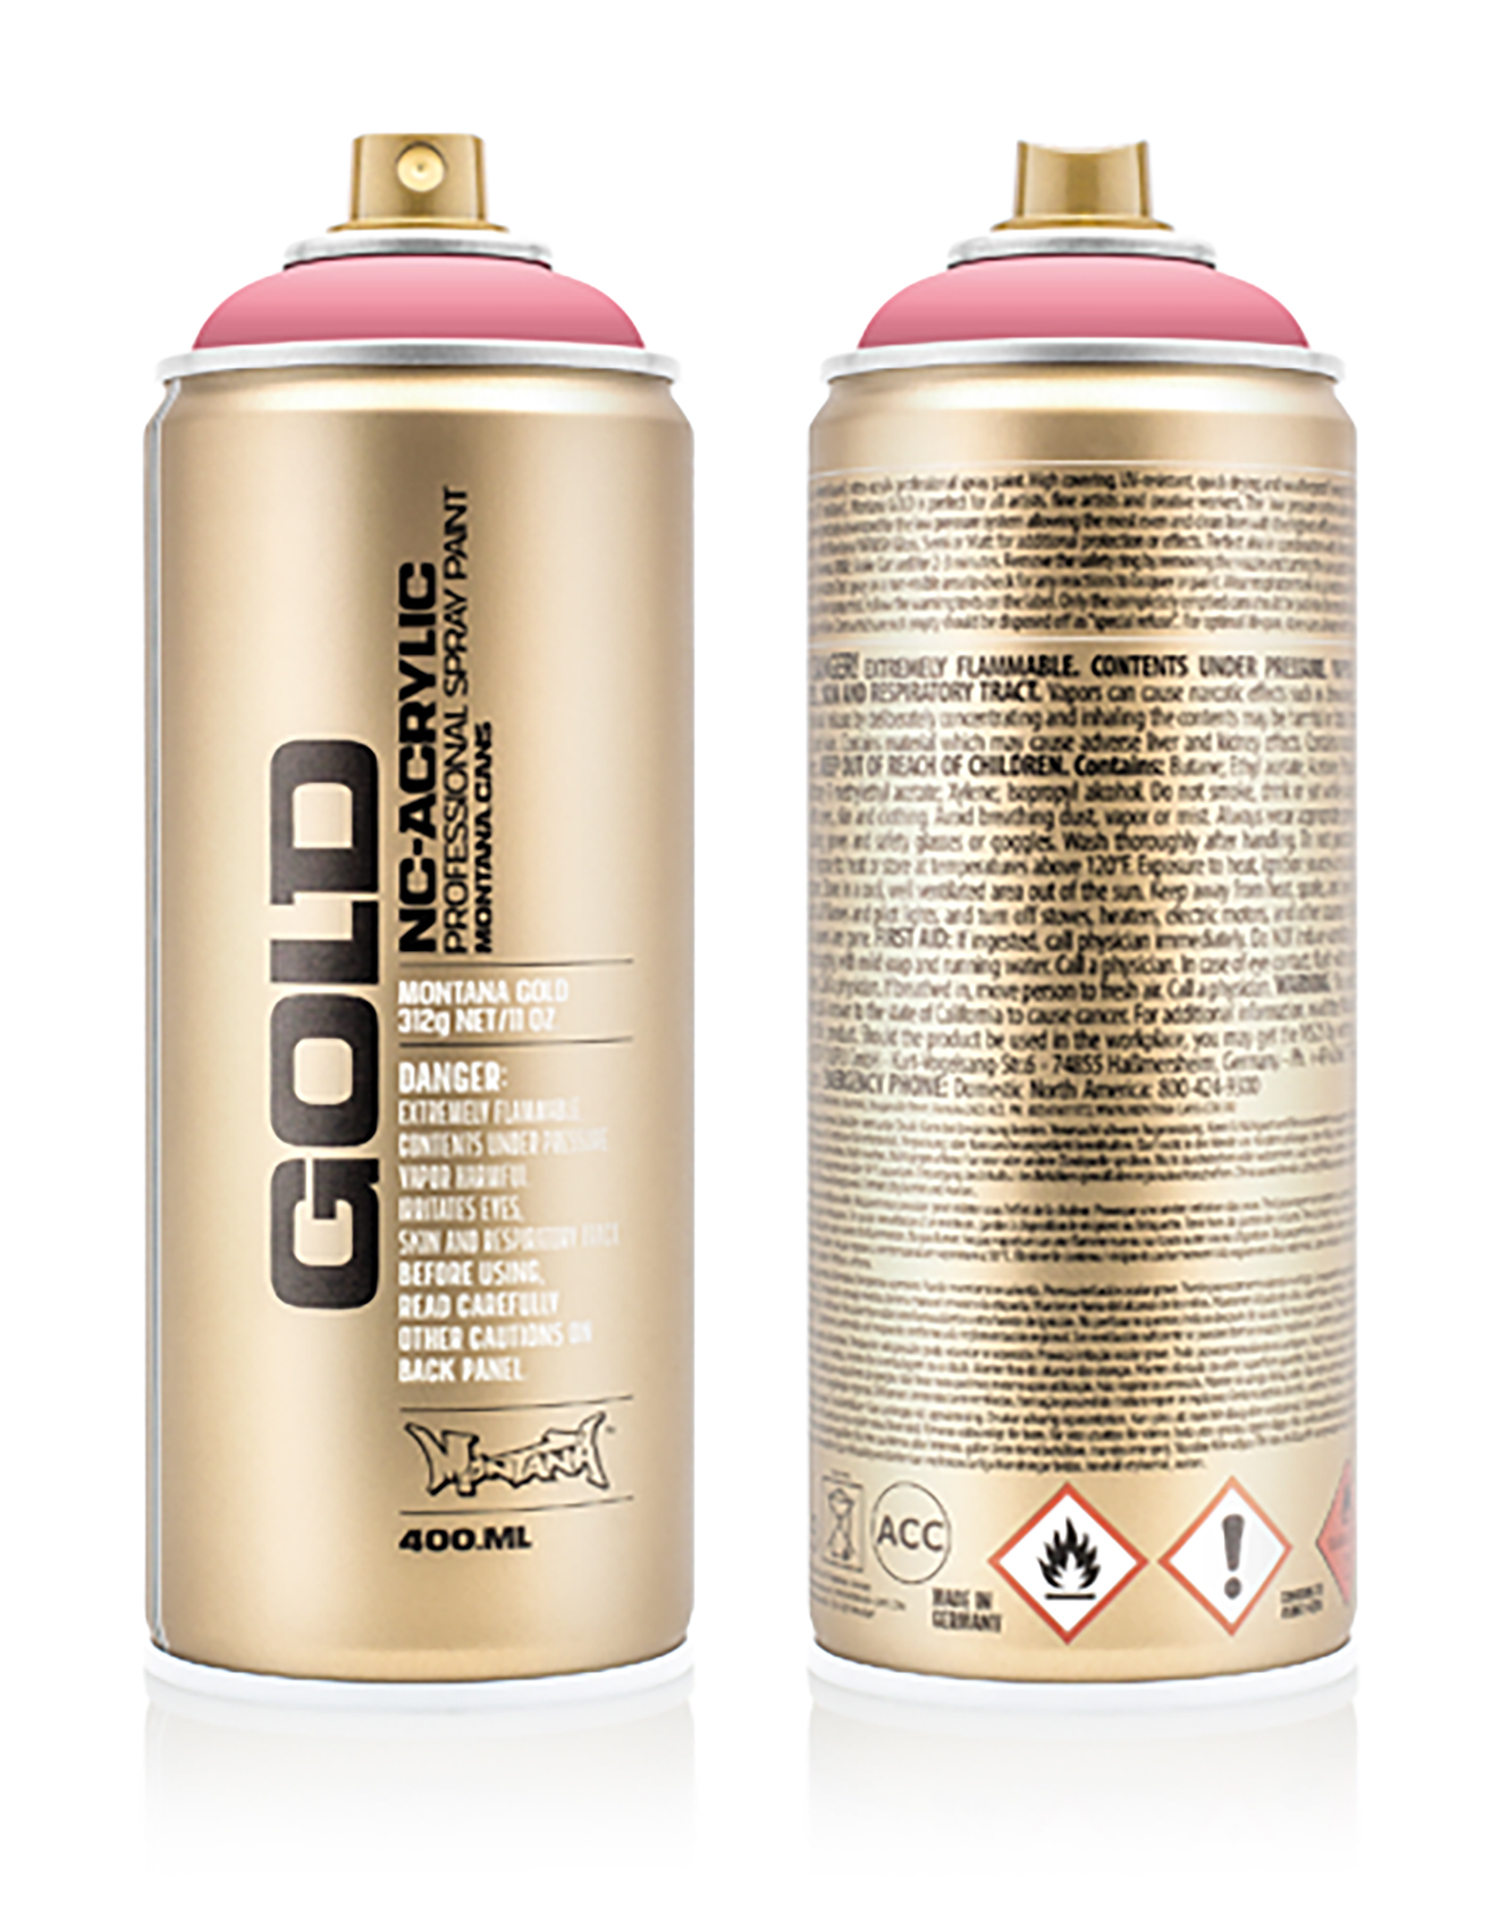 MONTANA-GOLD-SPRAY-400ML-G-3010